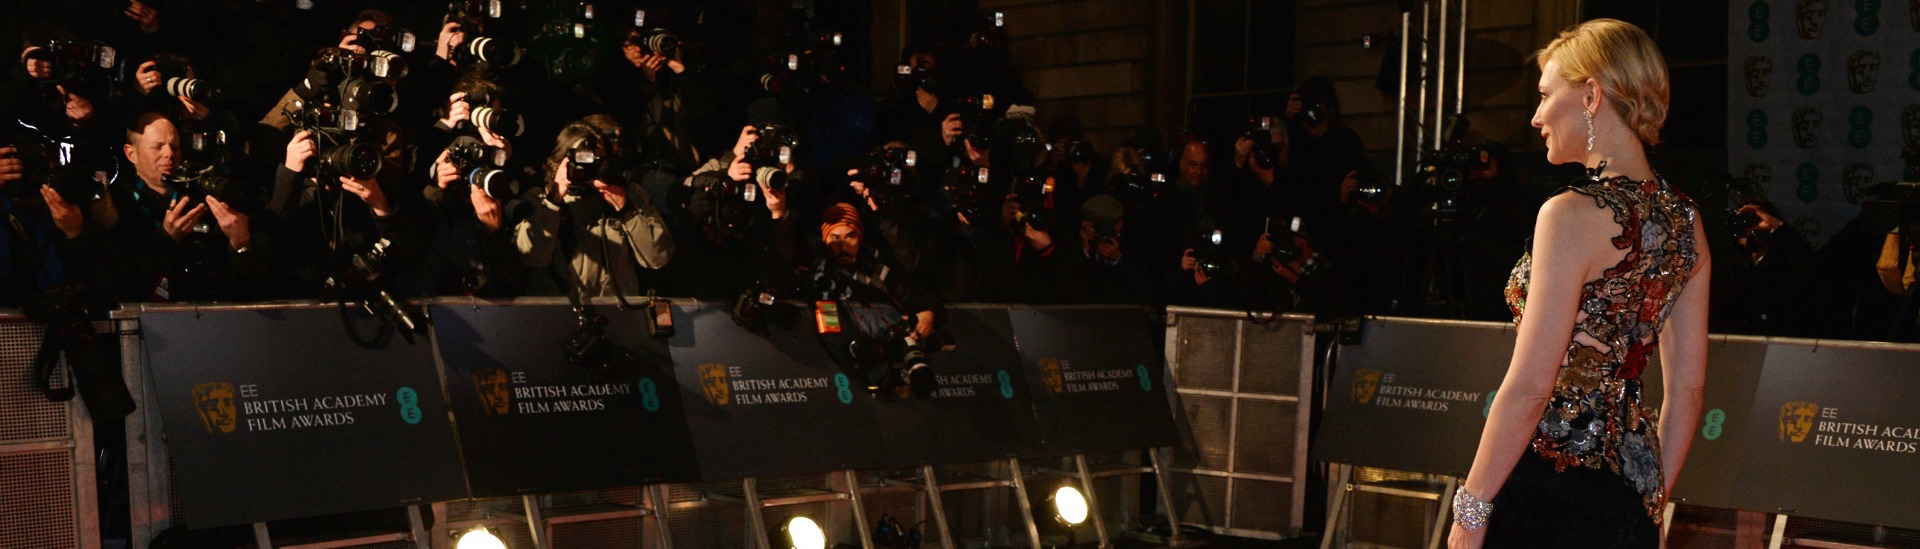 Gain access to the BAFTA Red Carpet